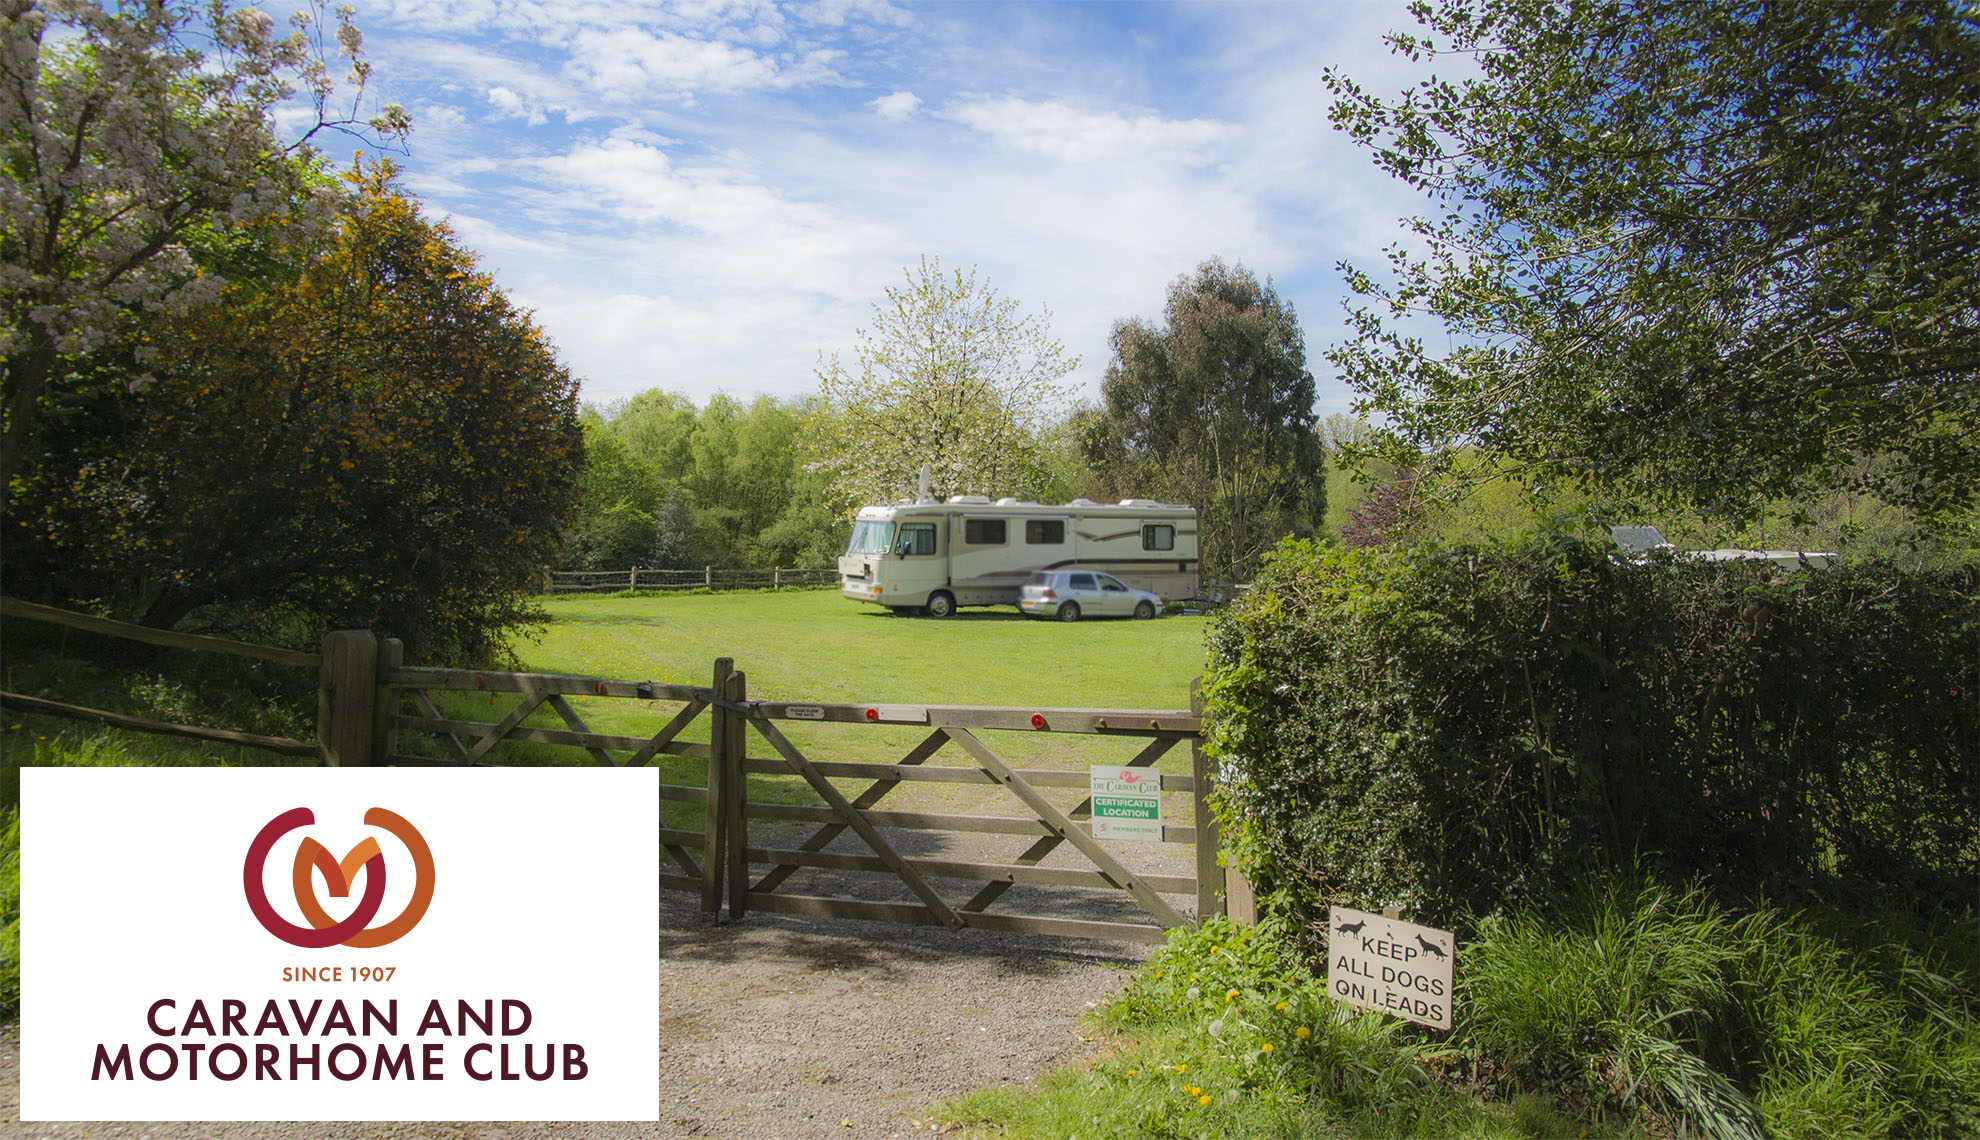 Camping and caravan club at Heaven Farm